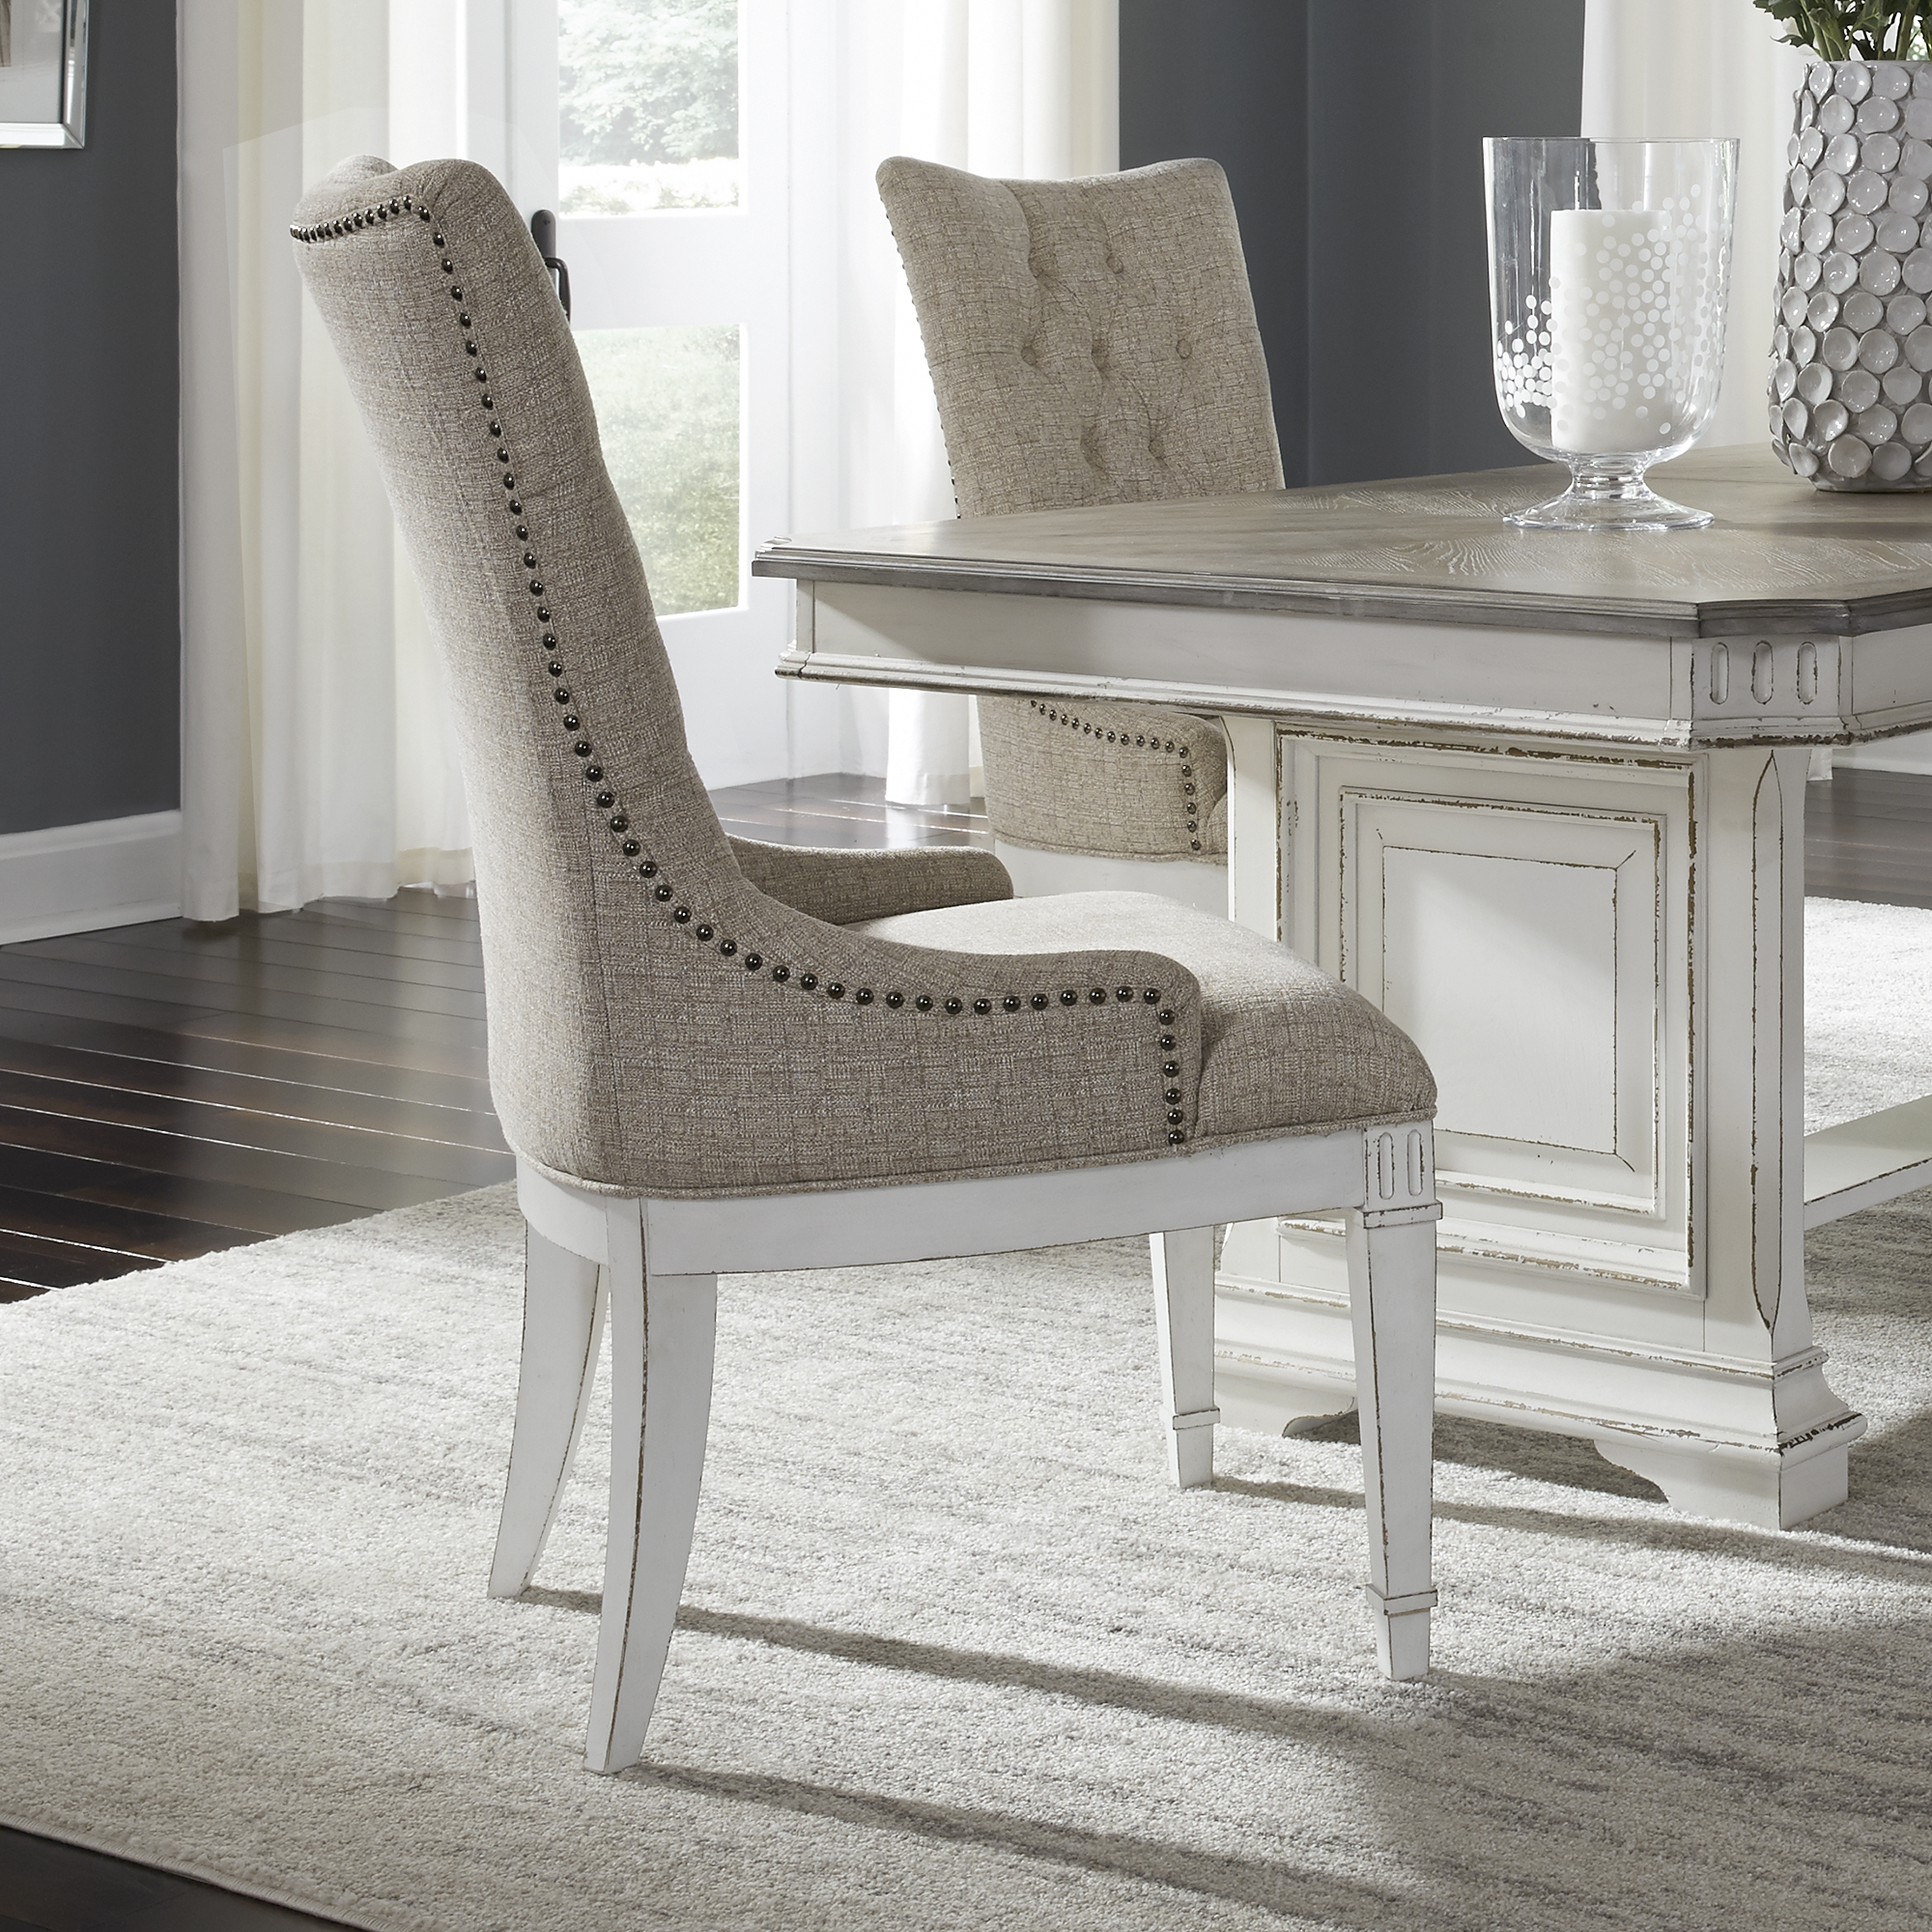 Dining Room Sets, Dining Room Furniture (View 11 of 25)